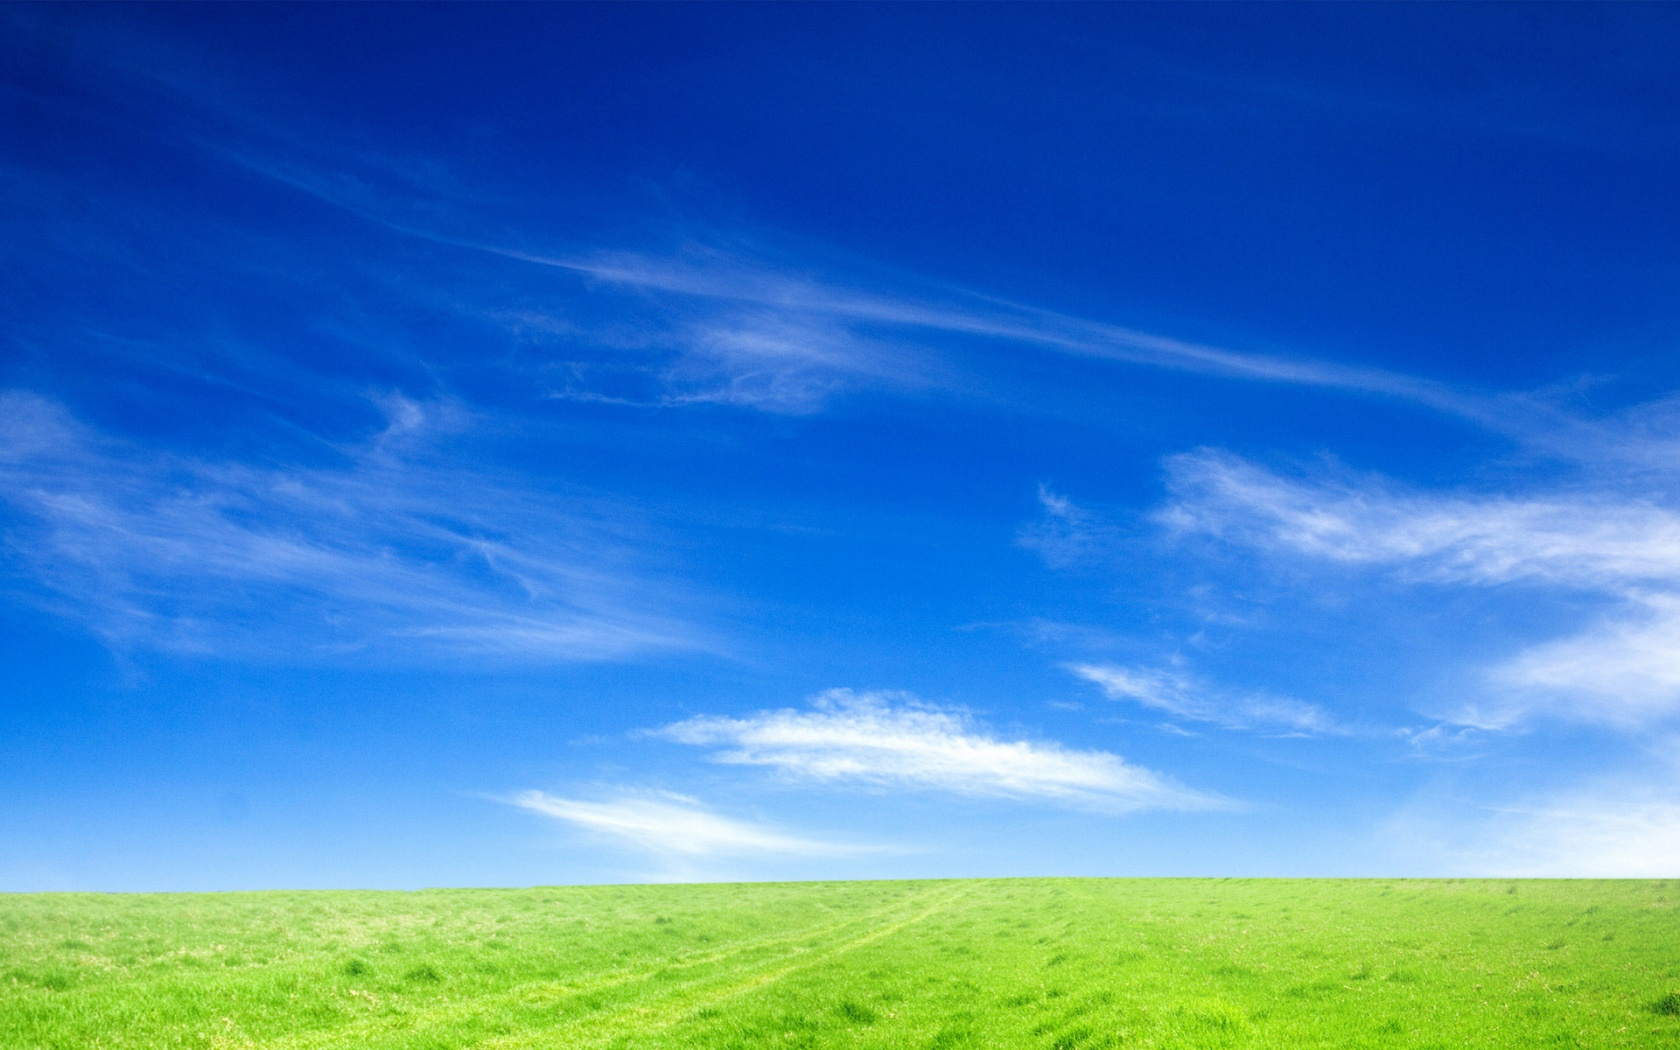 Blue Sky And Green Grass 4172469 1920x1200 All For Desktop